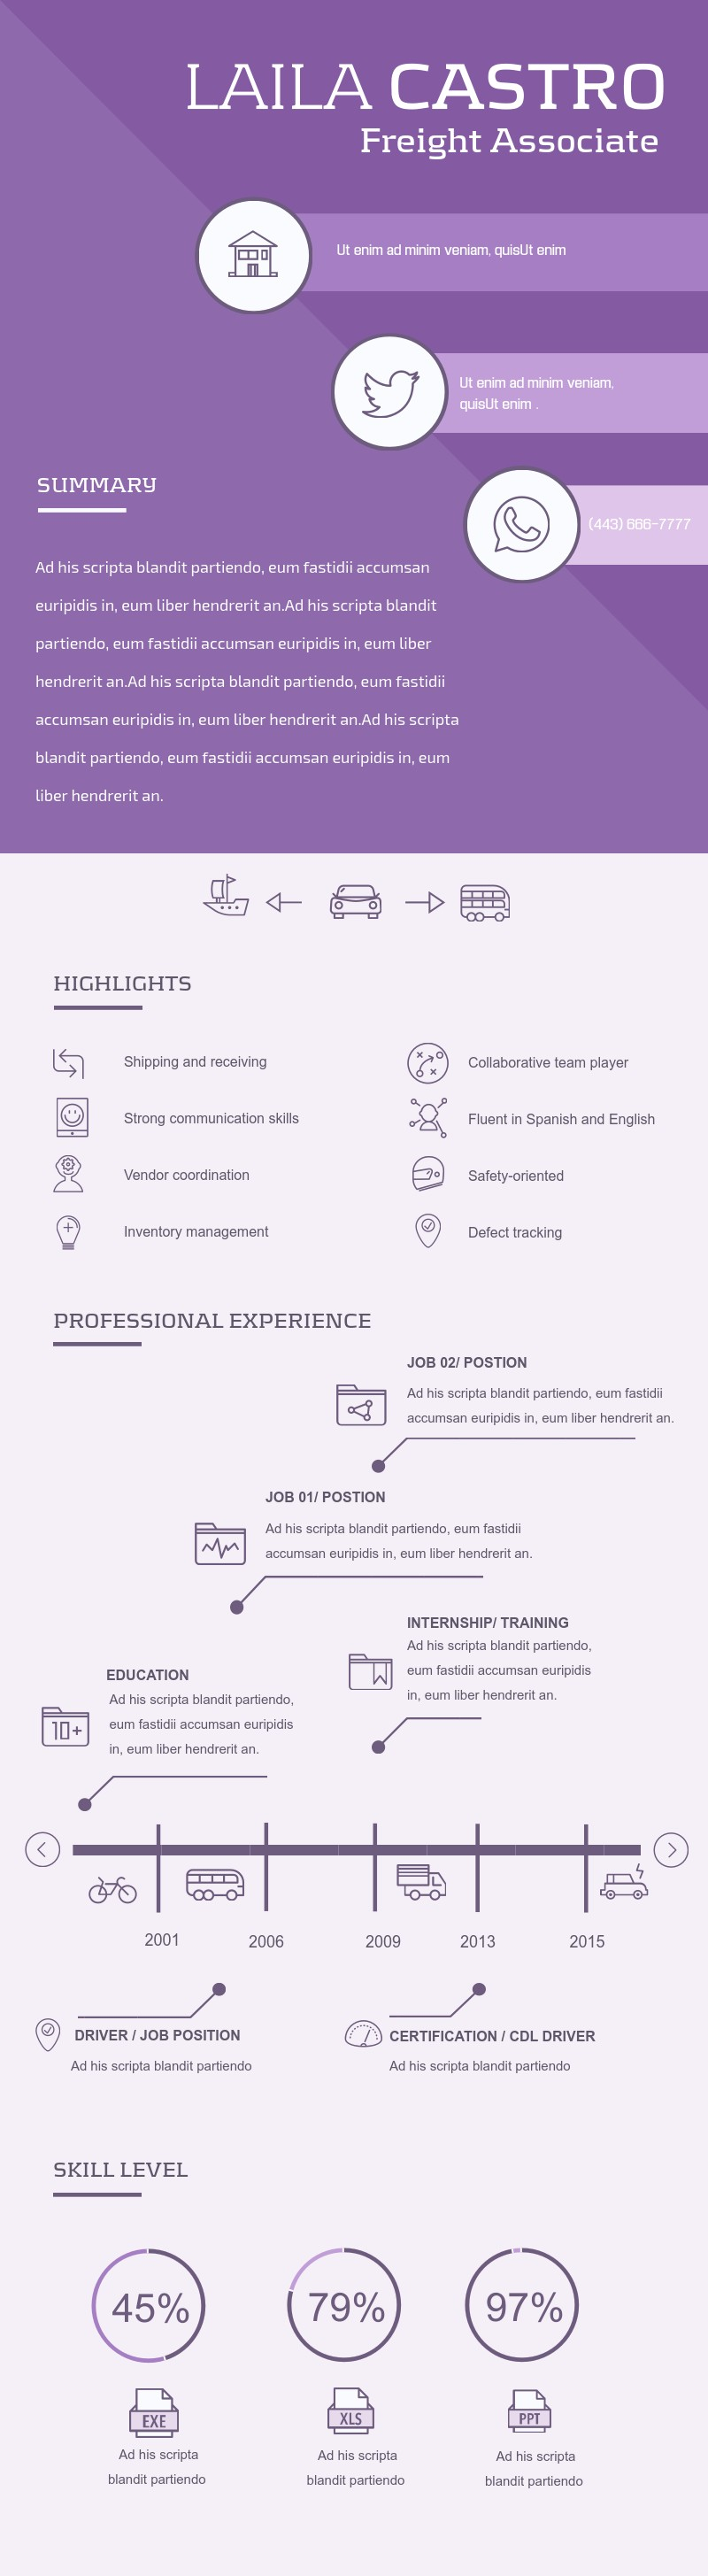 Freight Associate Resume - Infographic Template